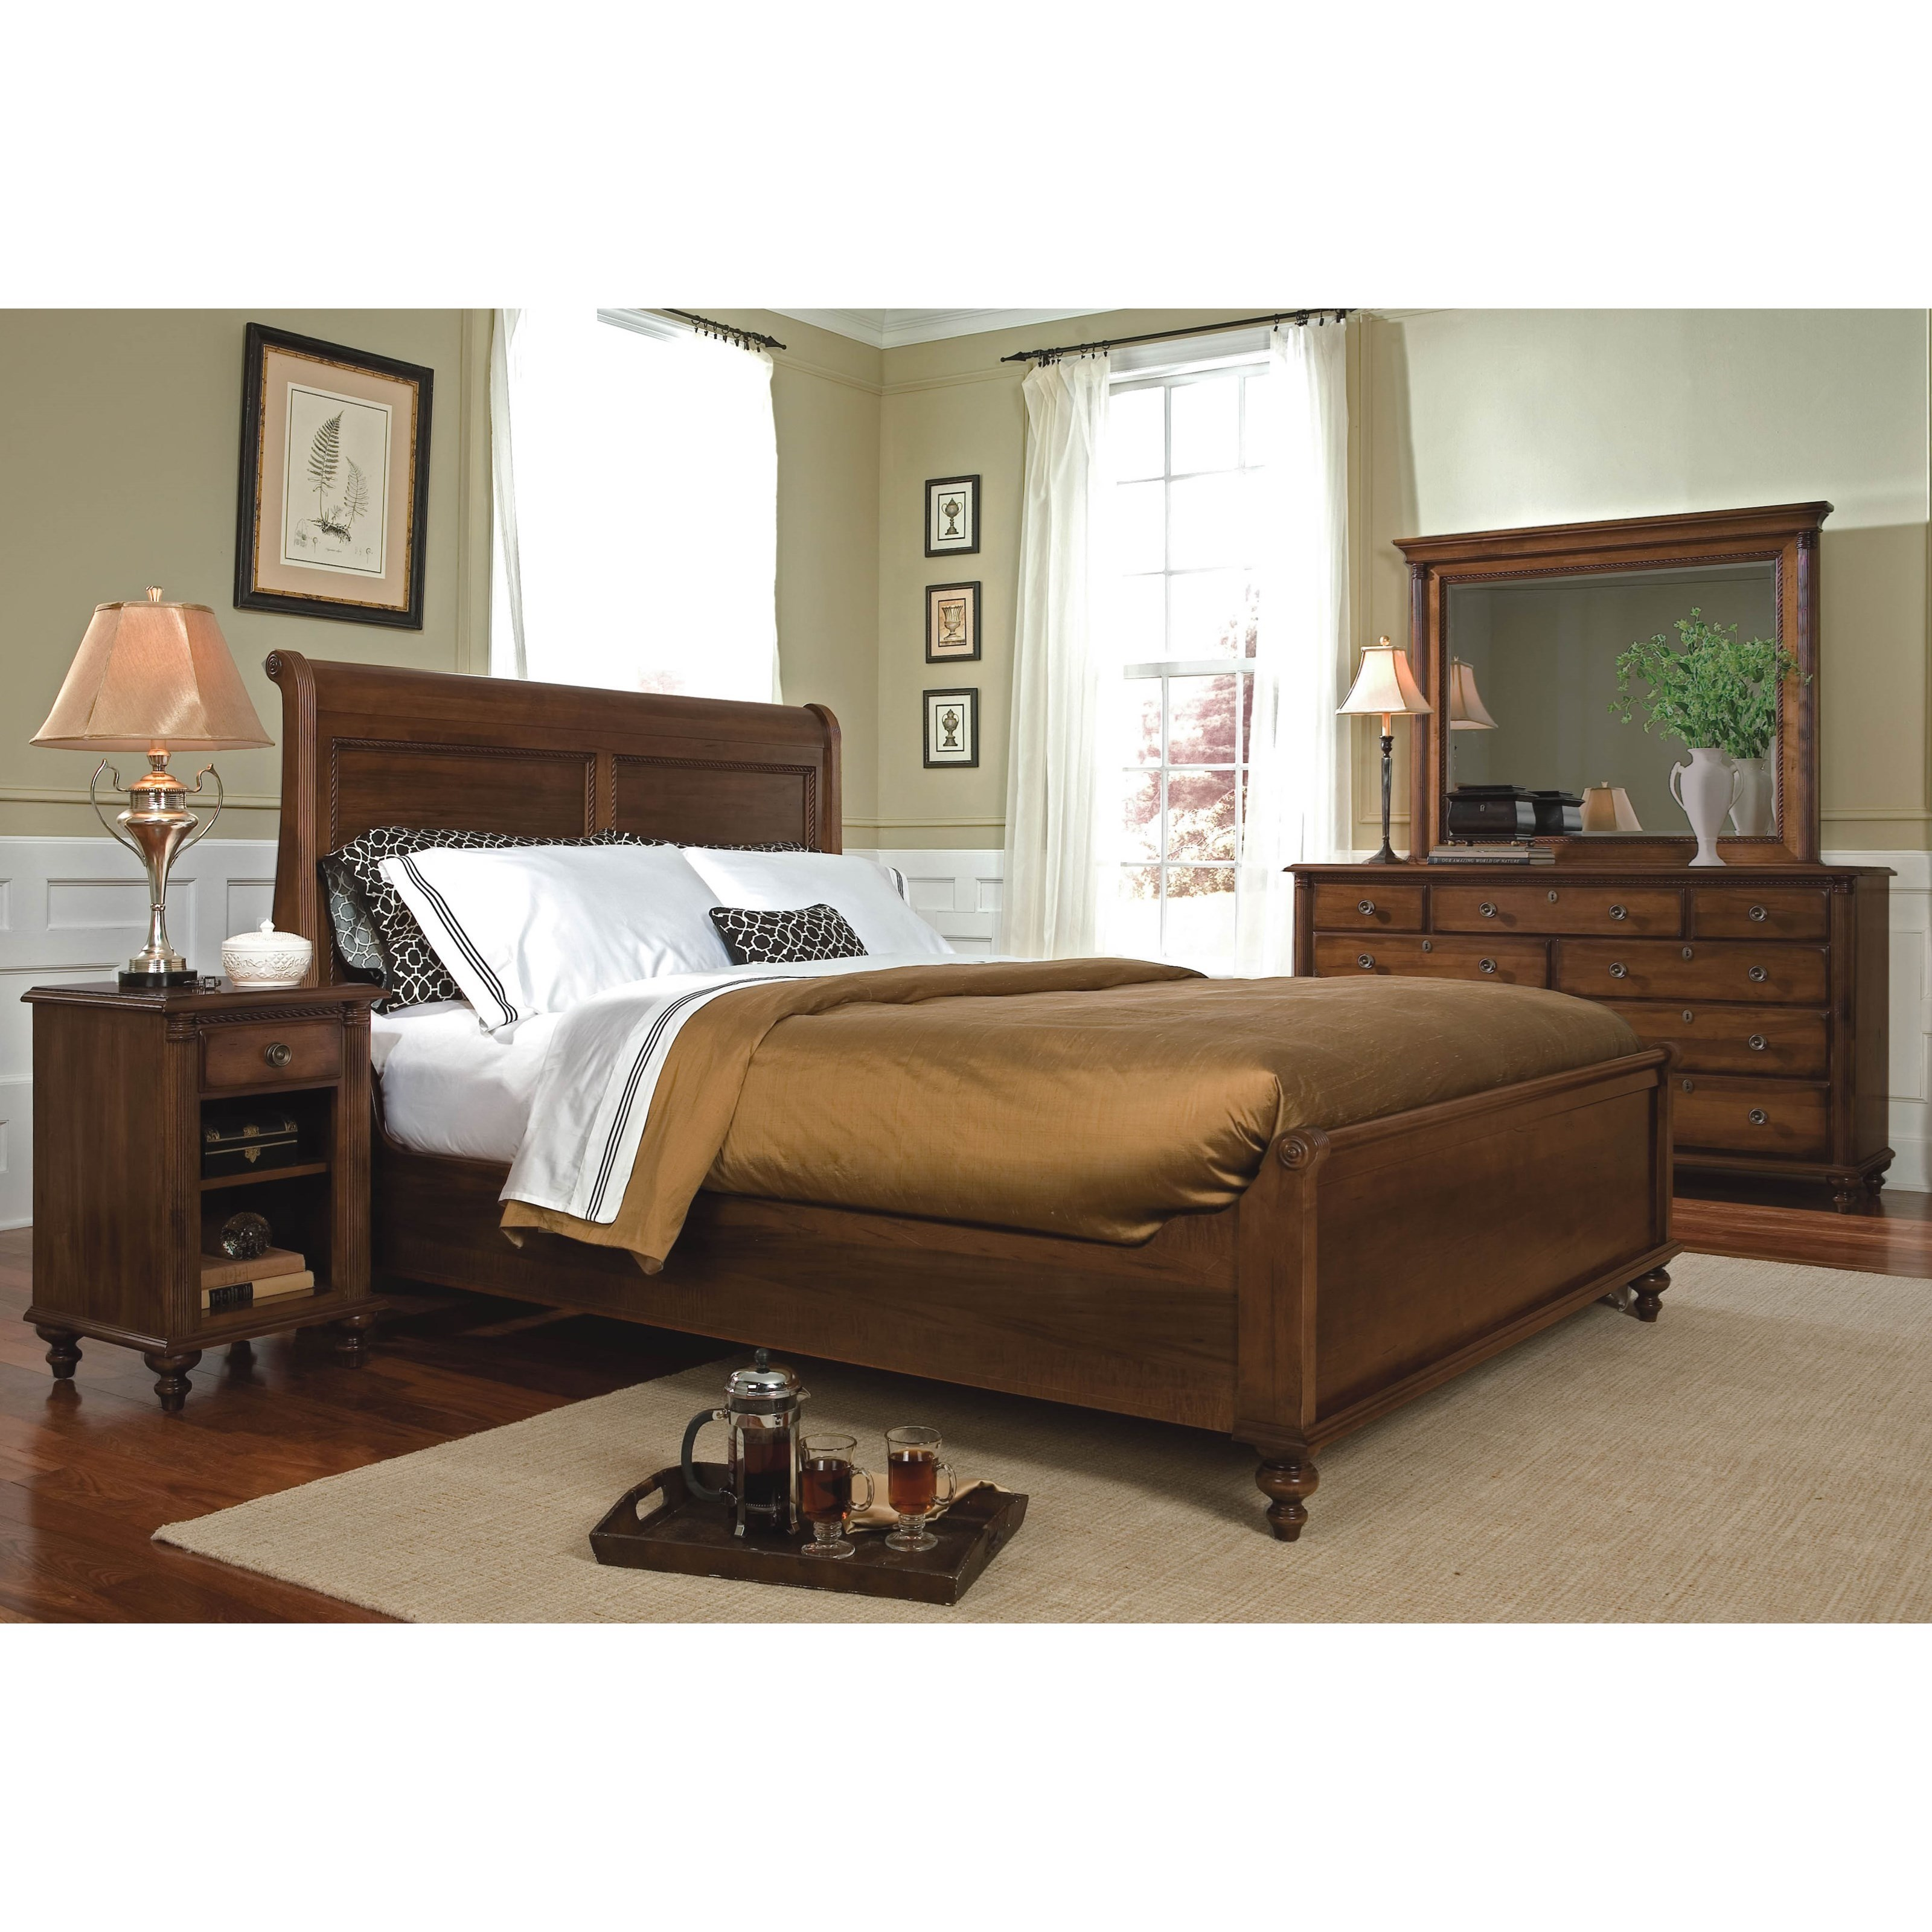 Saville Row King Sleigh Bed with Low Footboard by Durham at Jordan's Home Furnishings